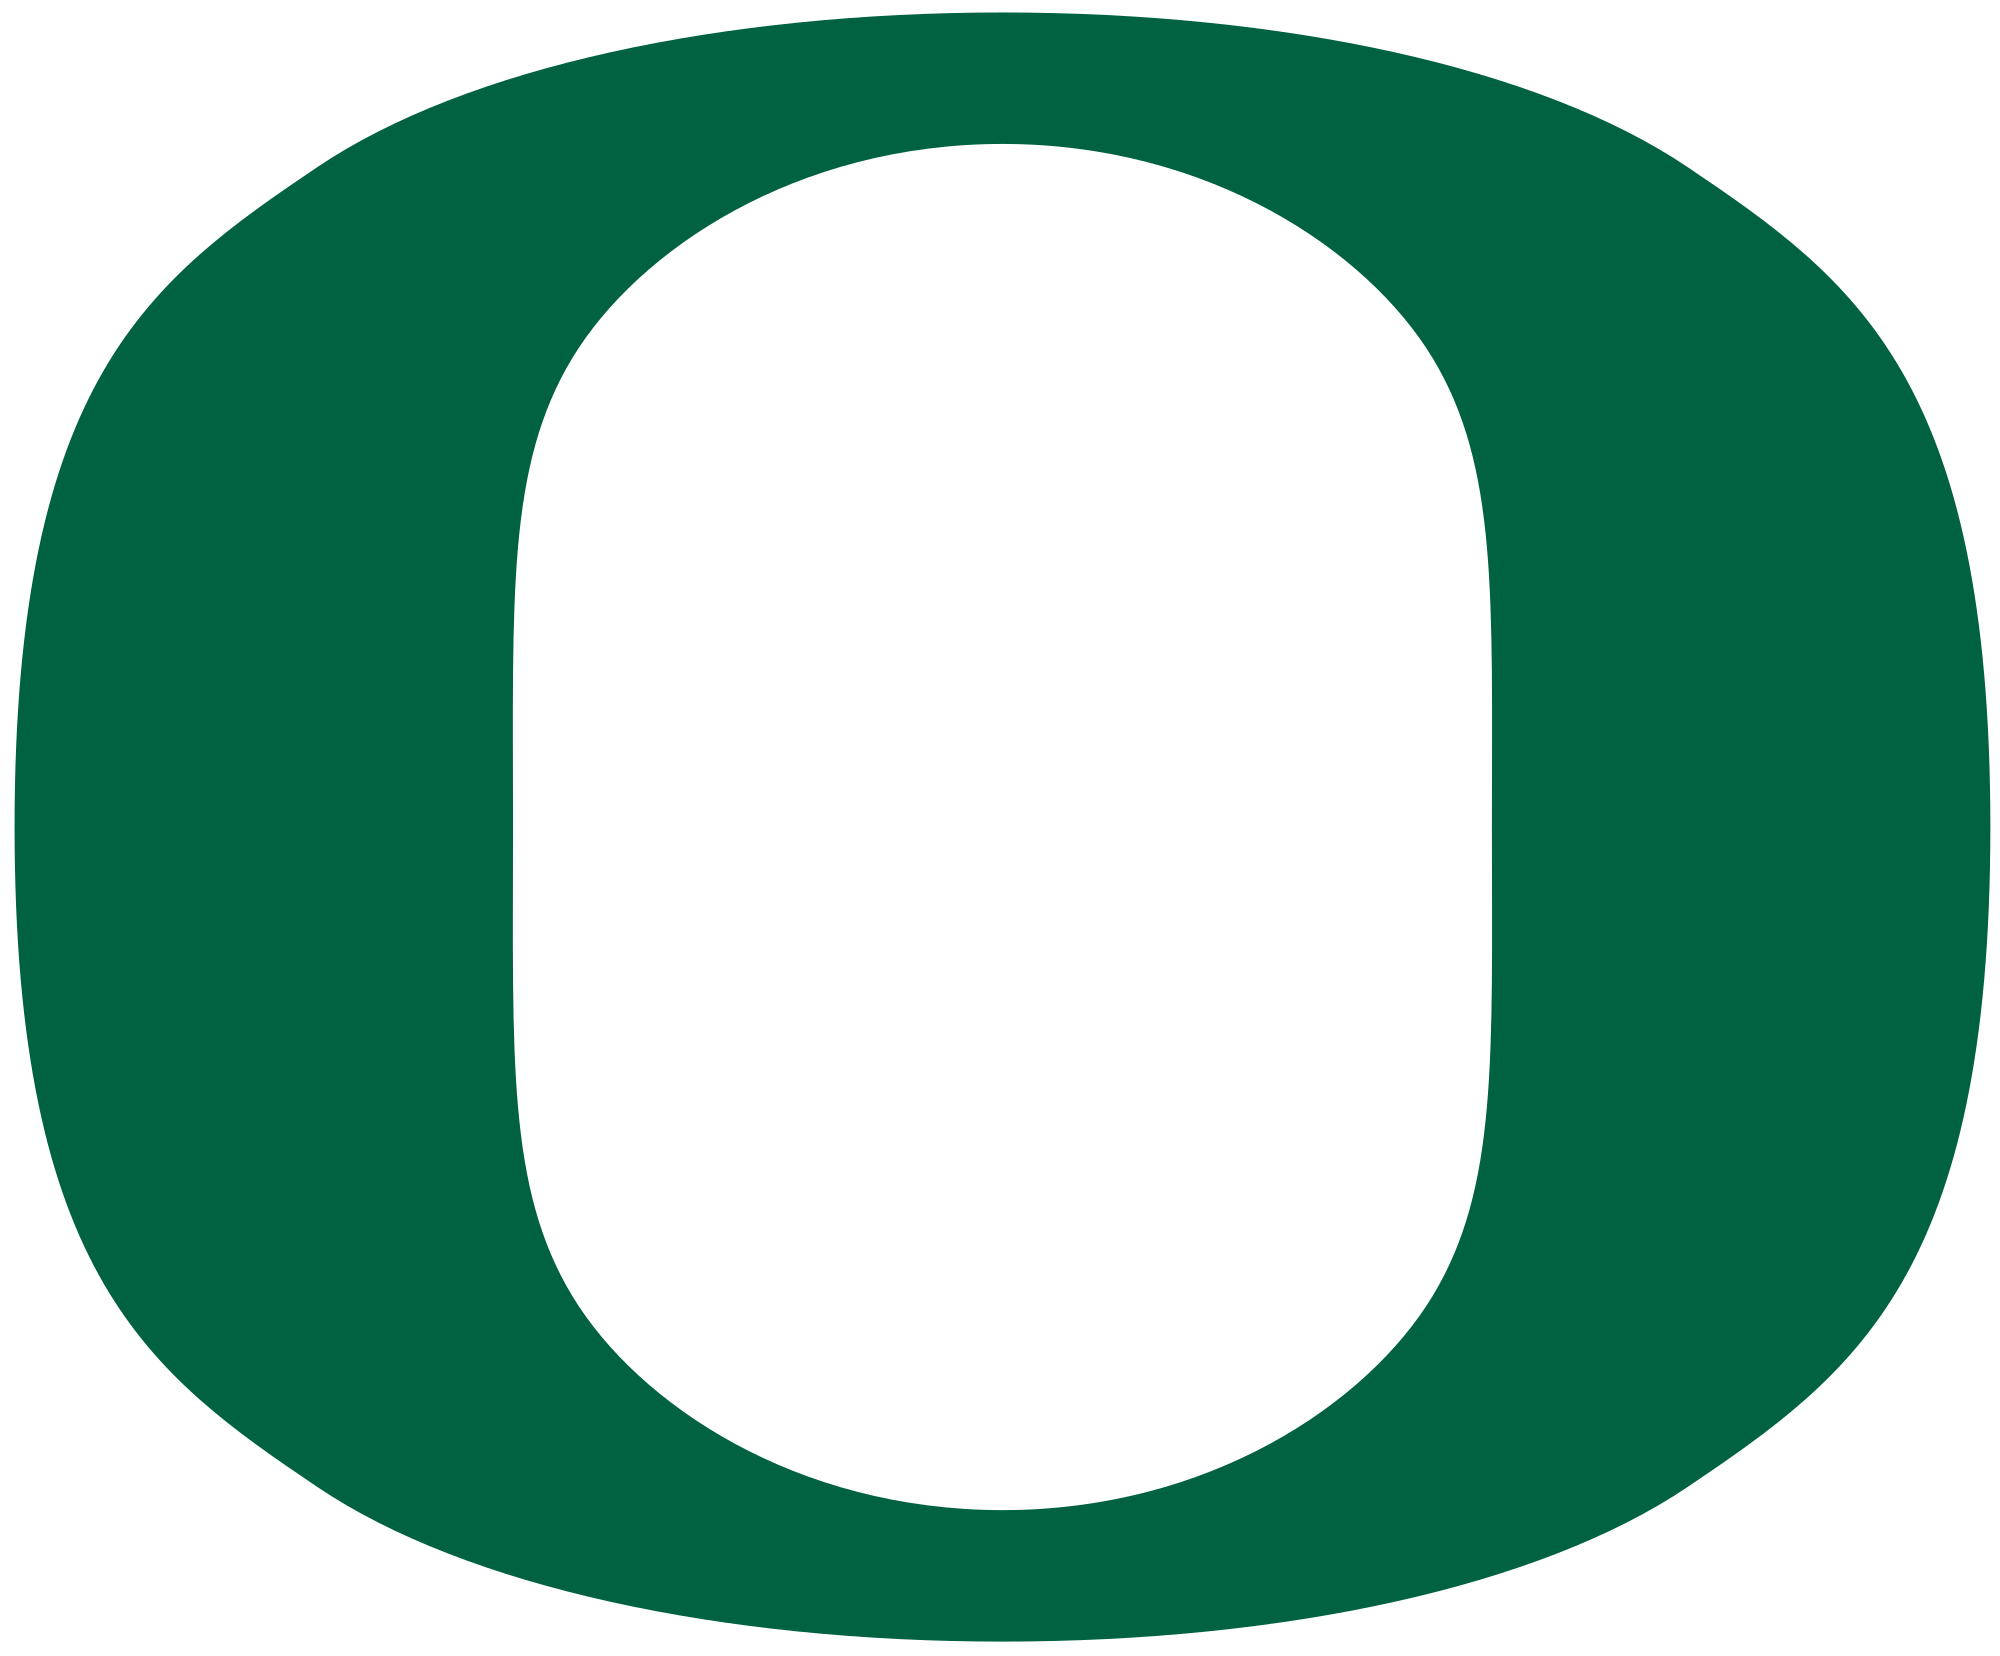 Oregon svg #9, Download drawings